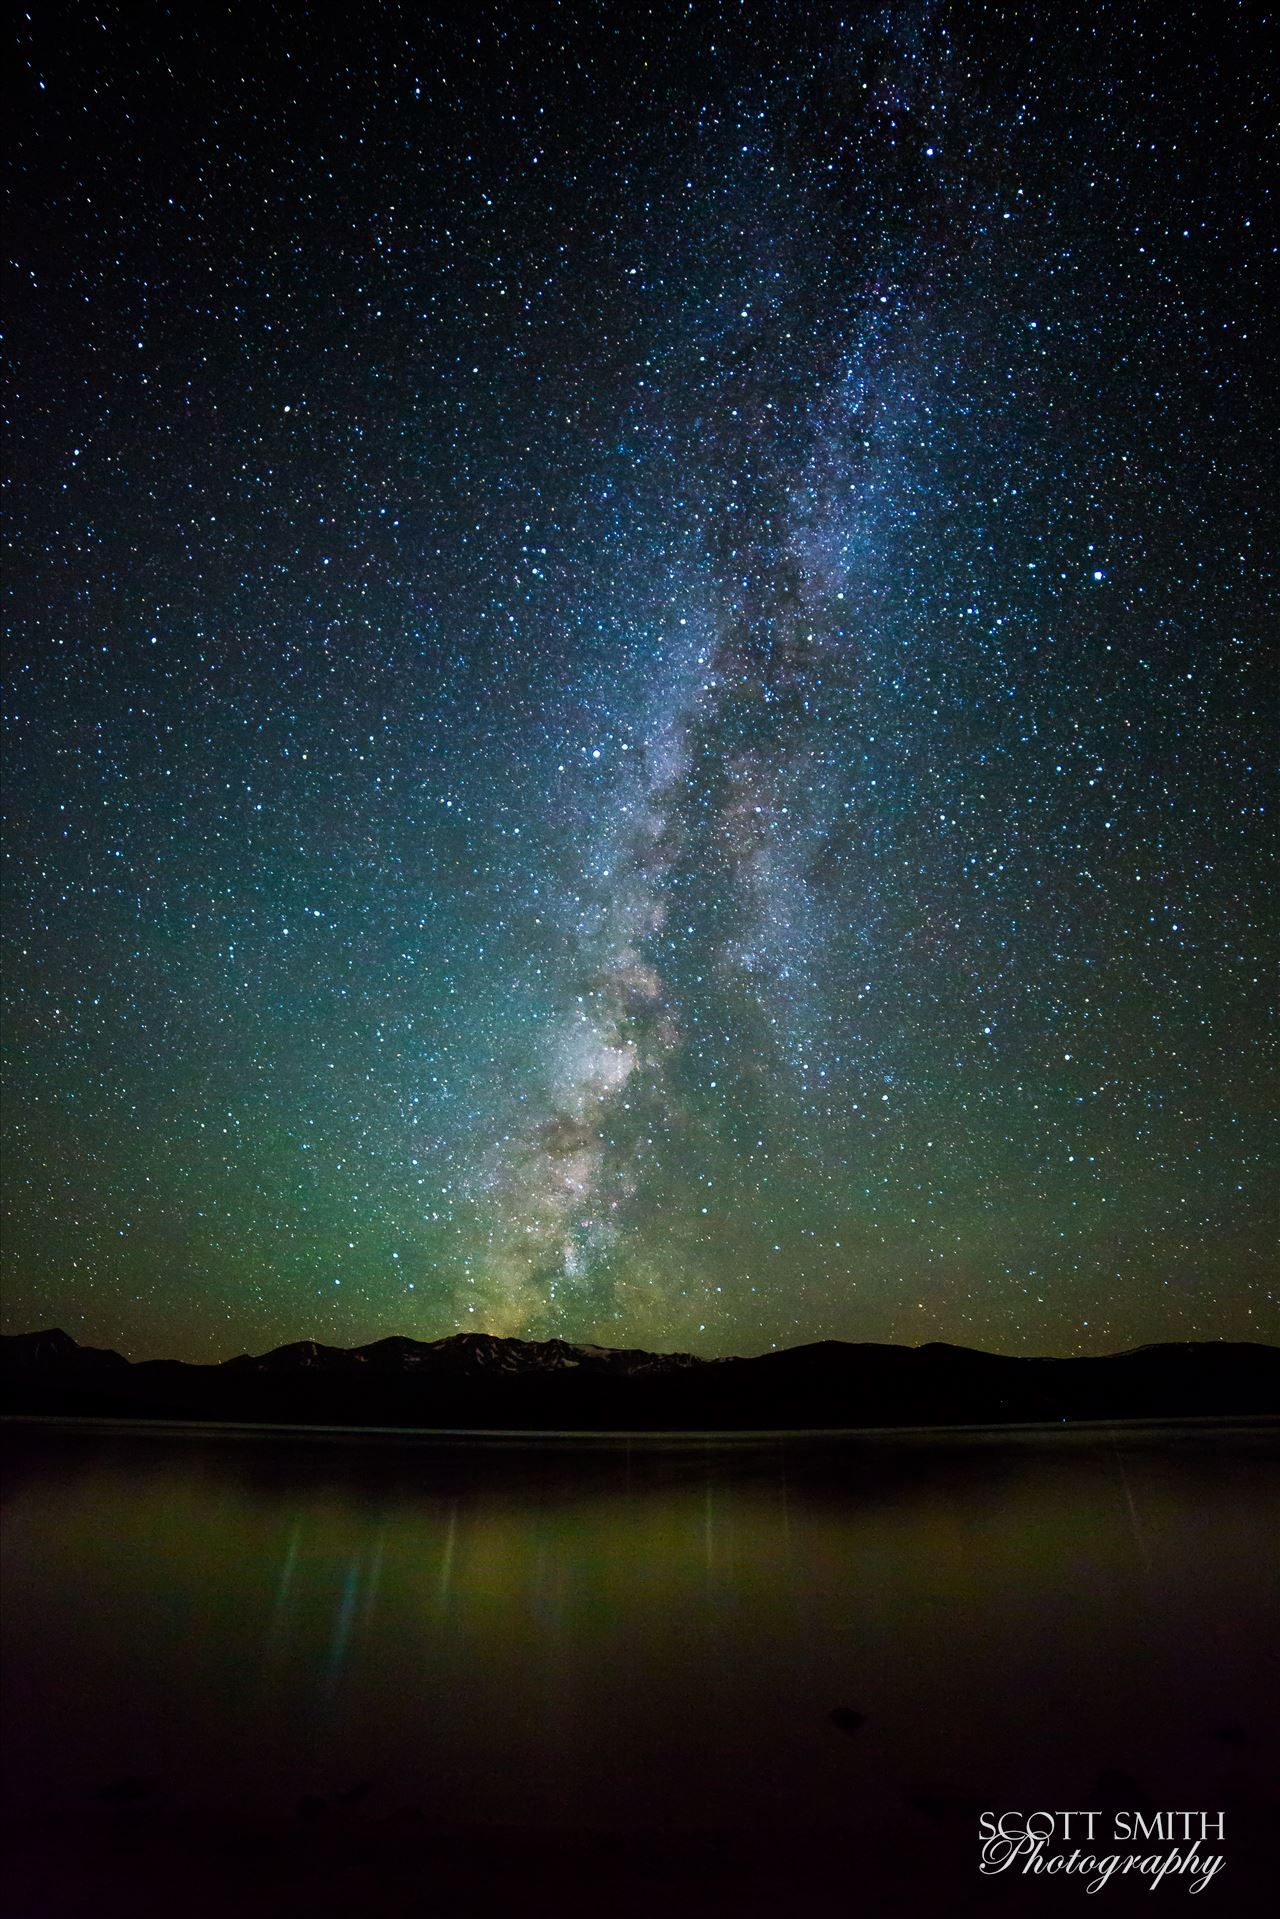 Milky Way at Turquoise Lake - 25 second exposure of the Milky Way from Turqouise Lake, Leadville Colorado. by Scott Smith Photos